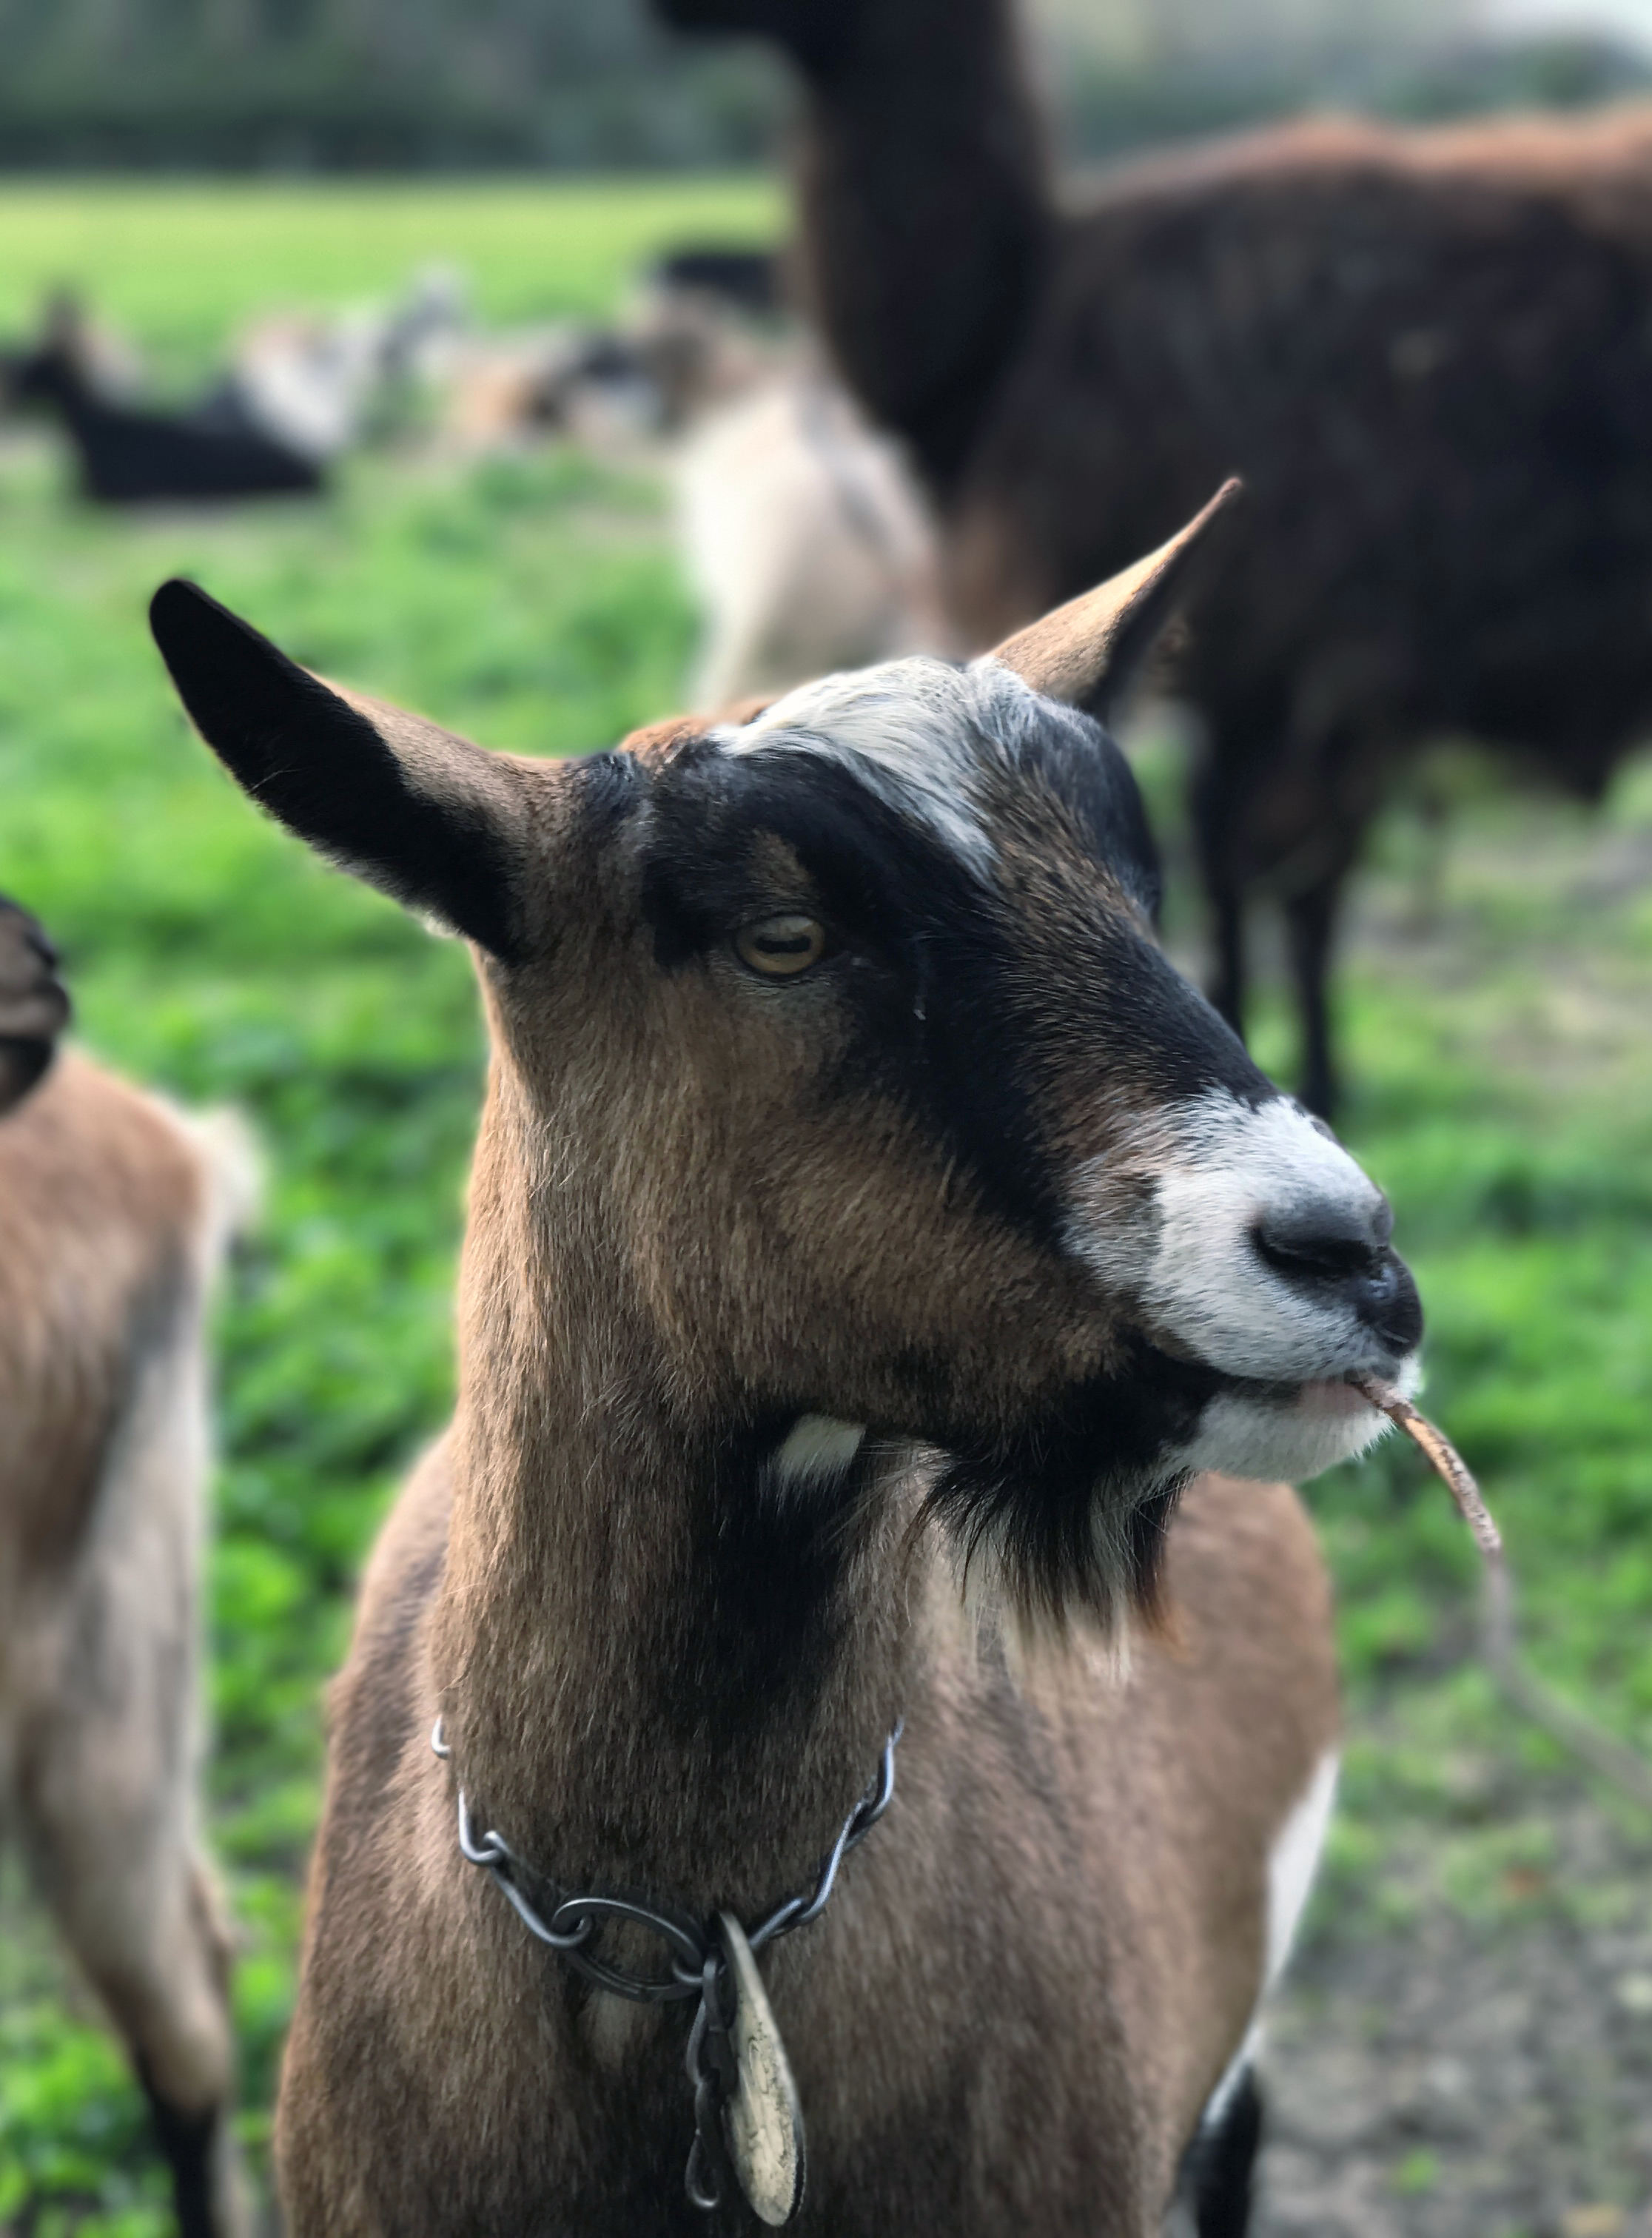 goat-harveys-farm-pascadero-ca-hobo-life